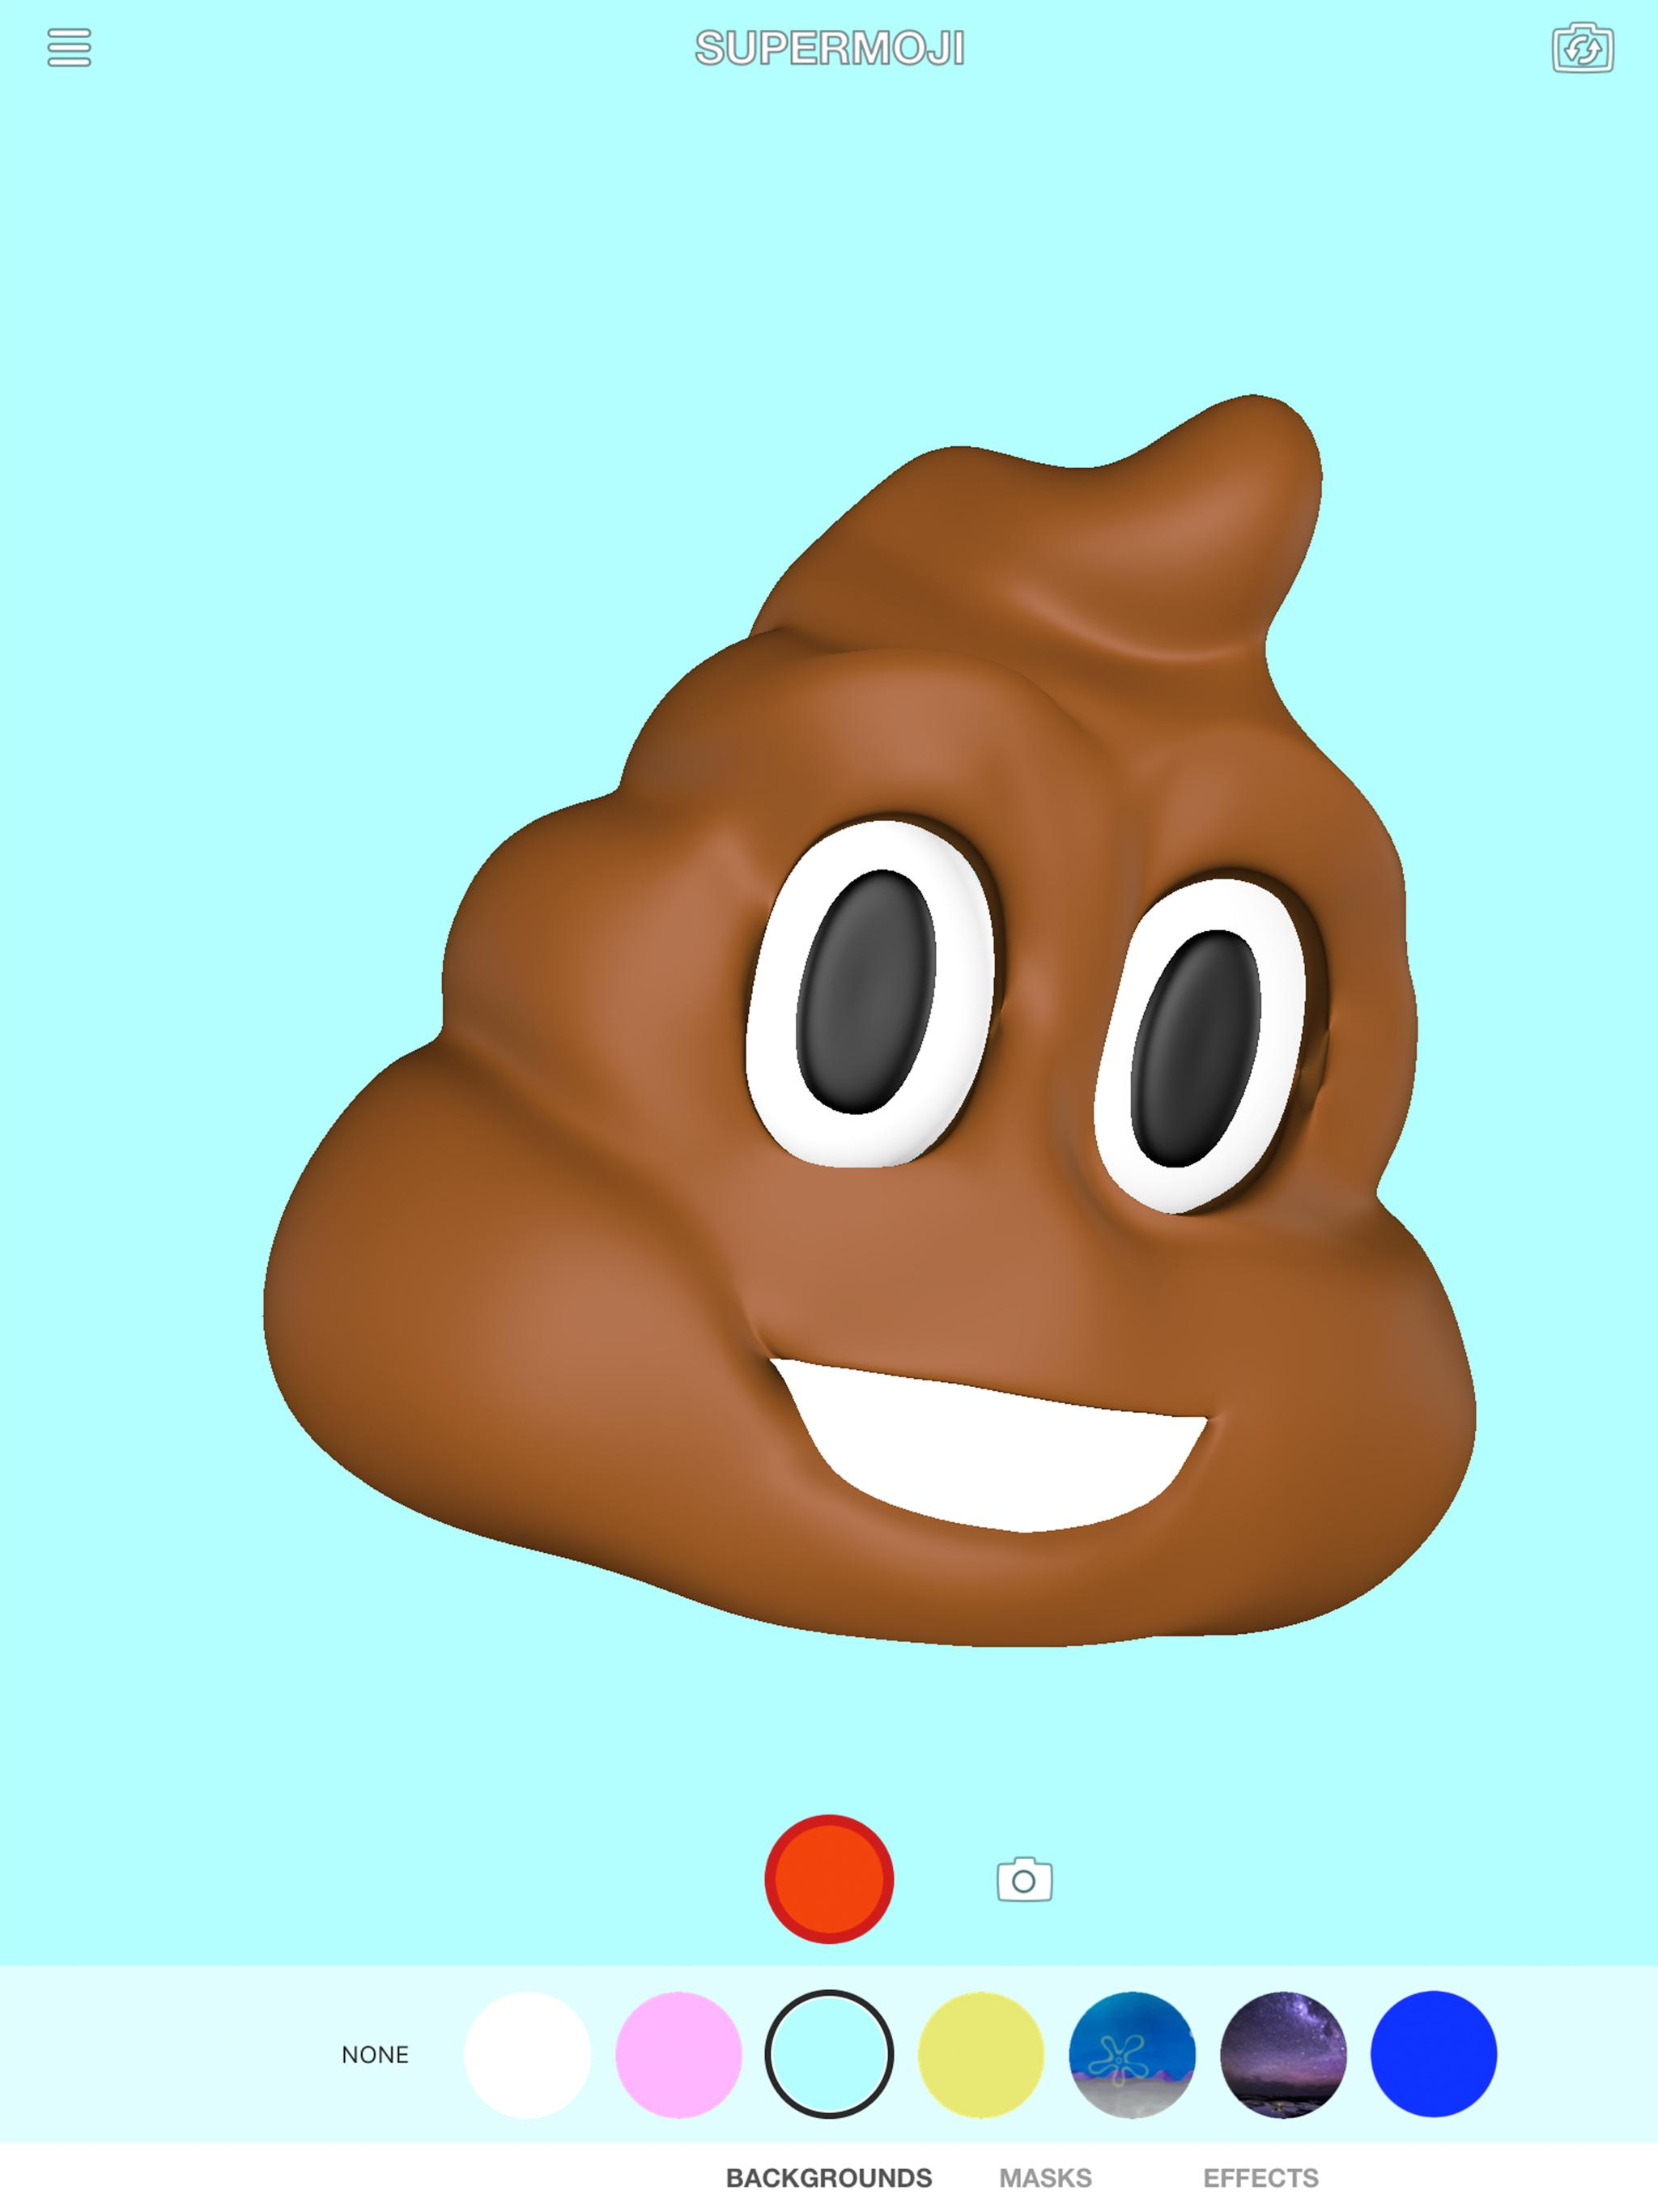 SUPERMOJI - the Emoji App for Android - APK Download